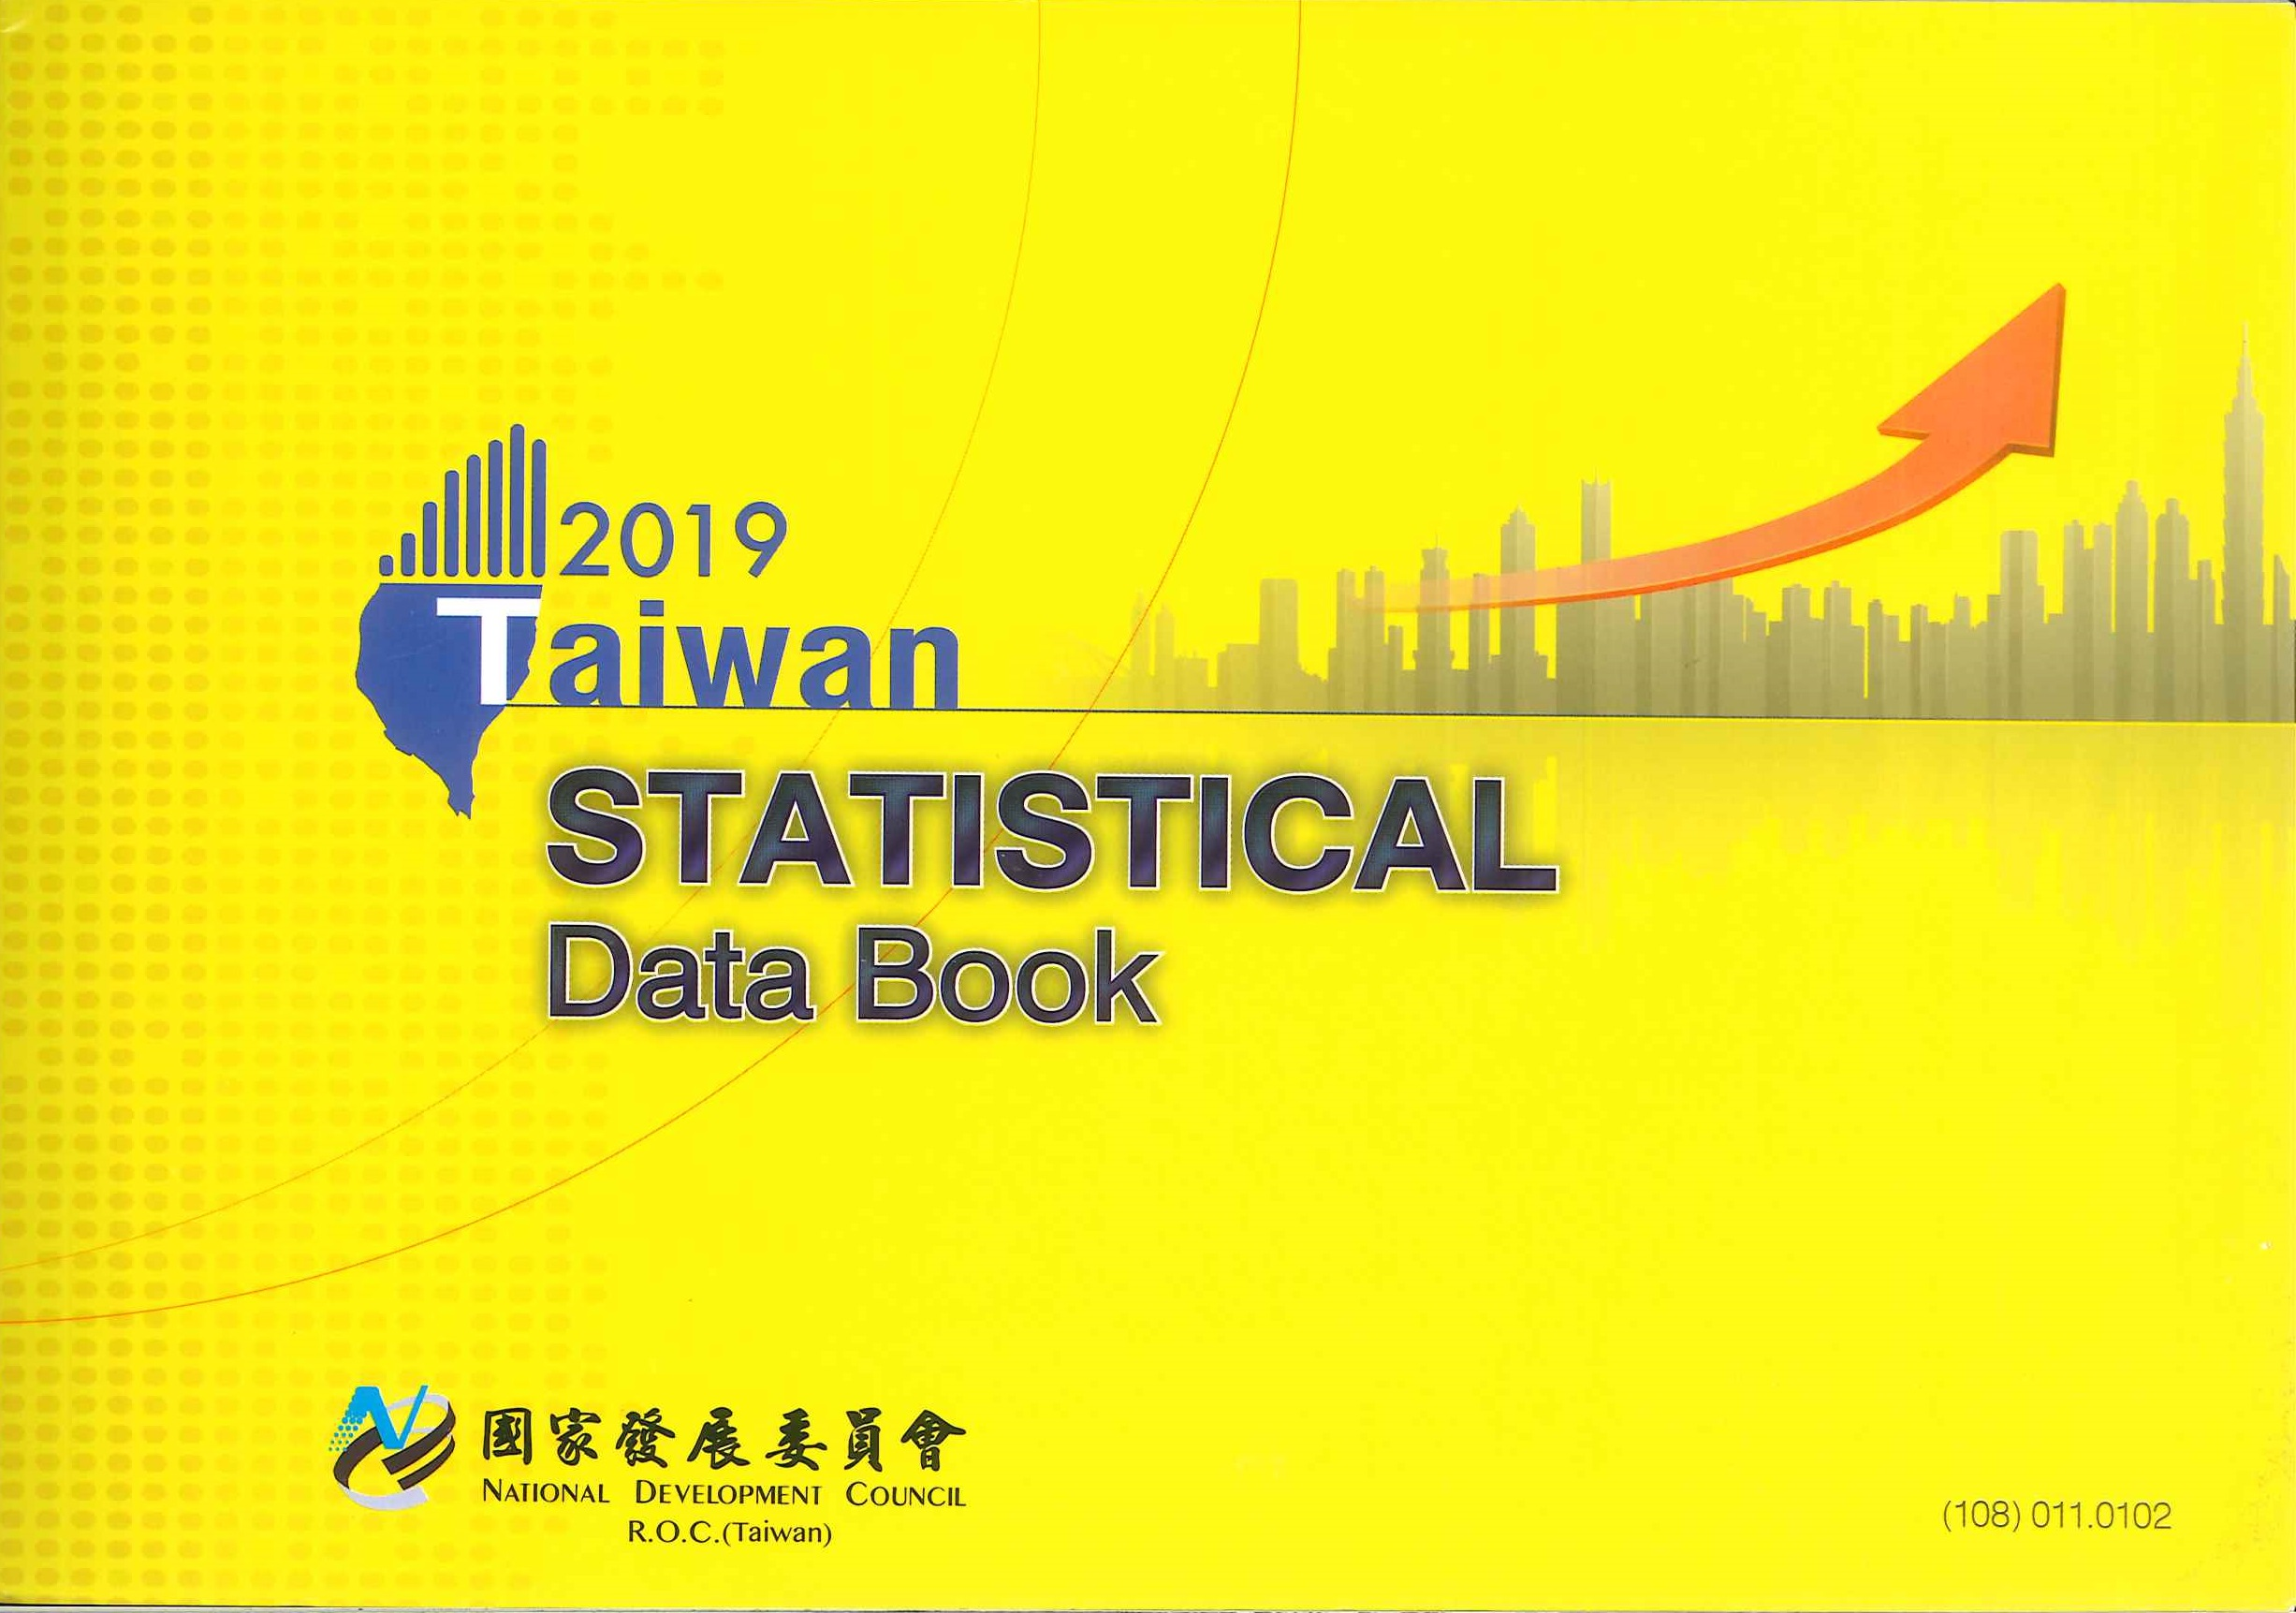 Taiwan statistical data book